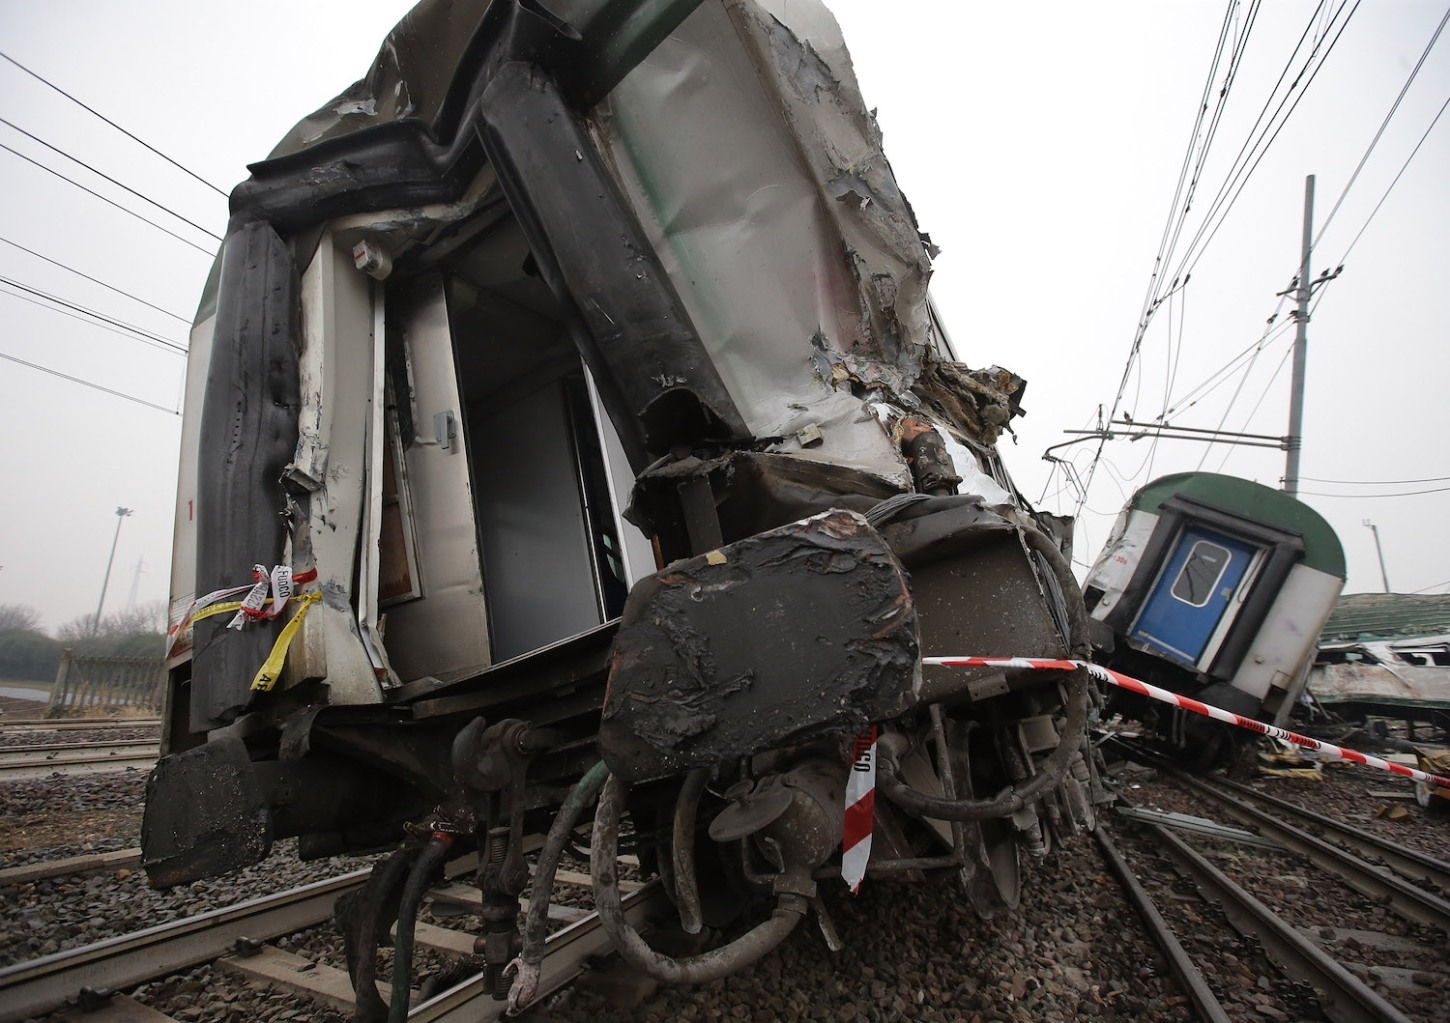 A general view of a destroyed commuter train that derailed close to Pioltello Limito station during morning rush hour on January 25, 2018 in Milan, Italy. Three people have died as a result and ten people ae seriosuly injured. (Photo by Emilio Andreoli/Getty Images)